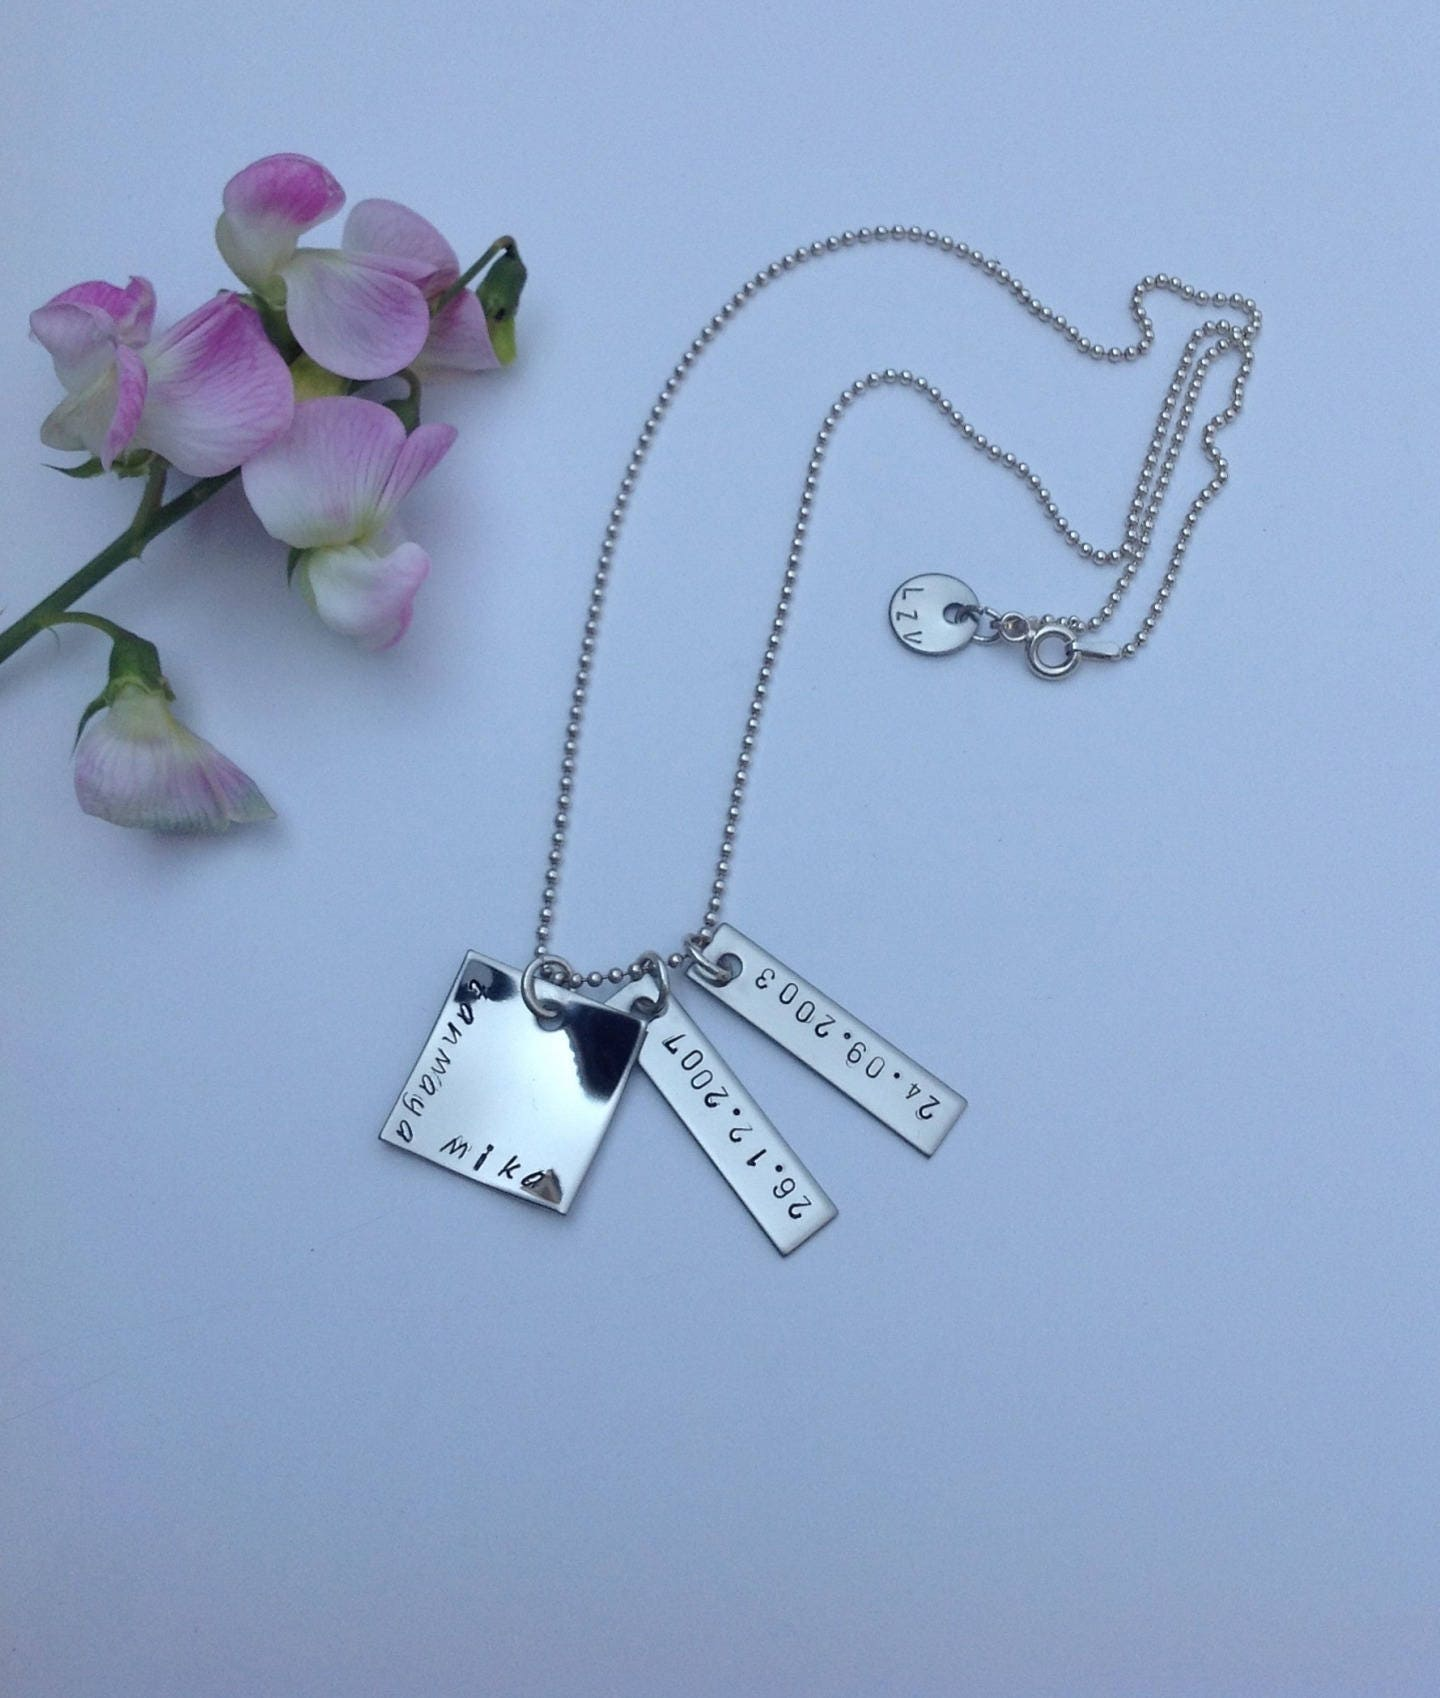 handmade buy name soradesigns personalized made mothers gift day a custom bar children necklace by kids neckl